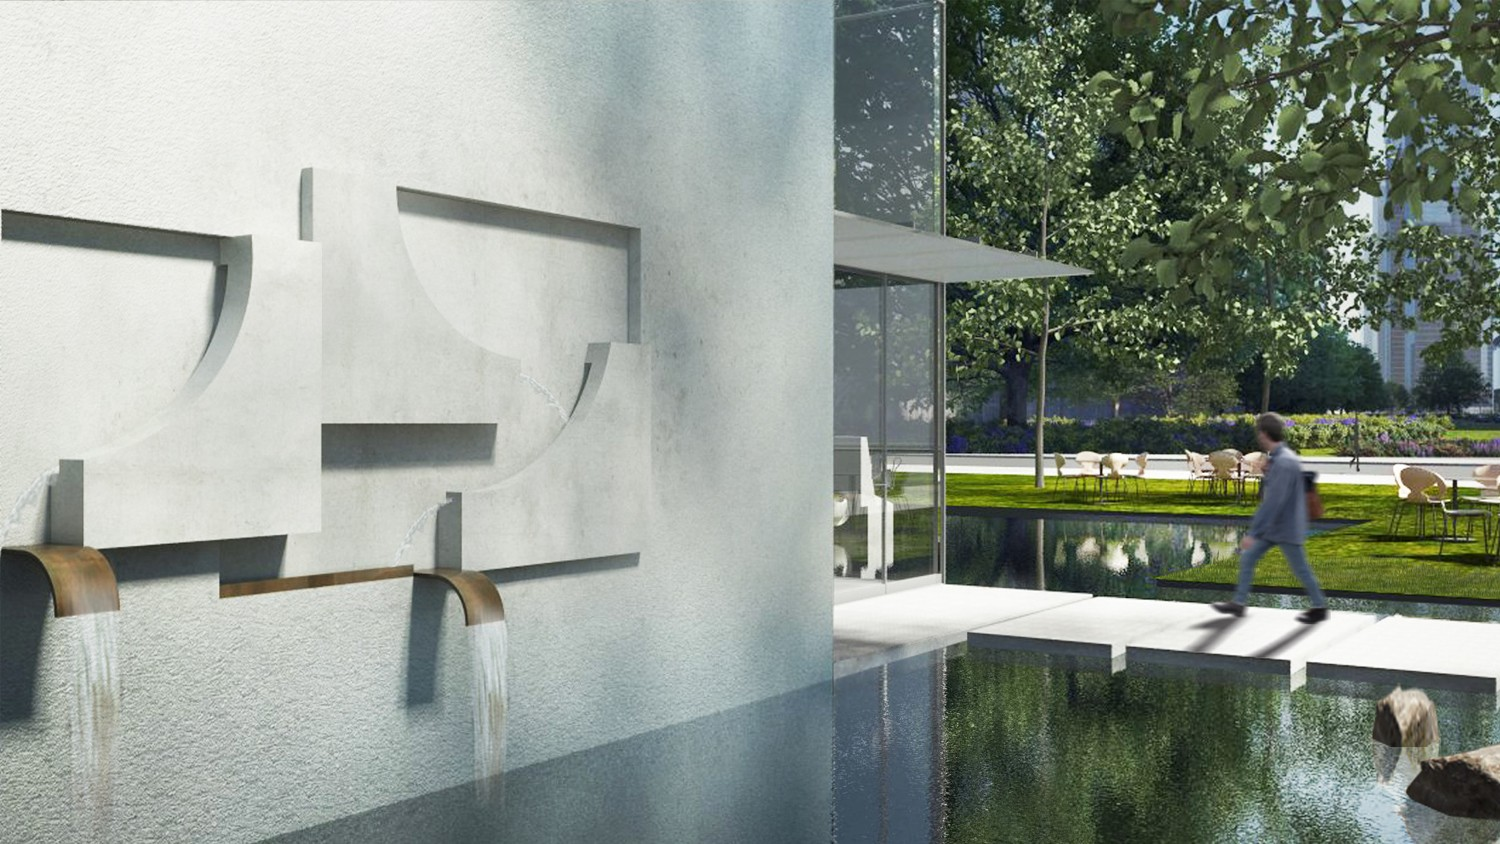 https://s3.us-east-2.amazonaws.com/steven-holl/uploads/projects/project-images/cifi-fountain.jpg